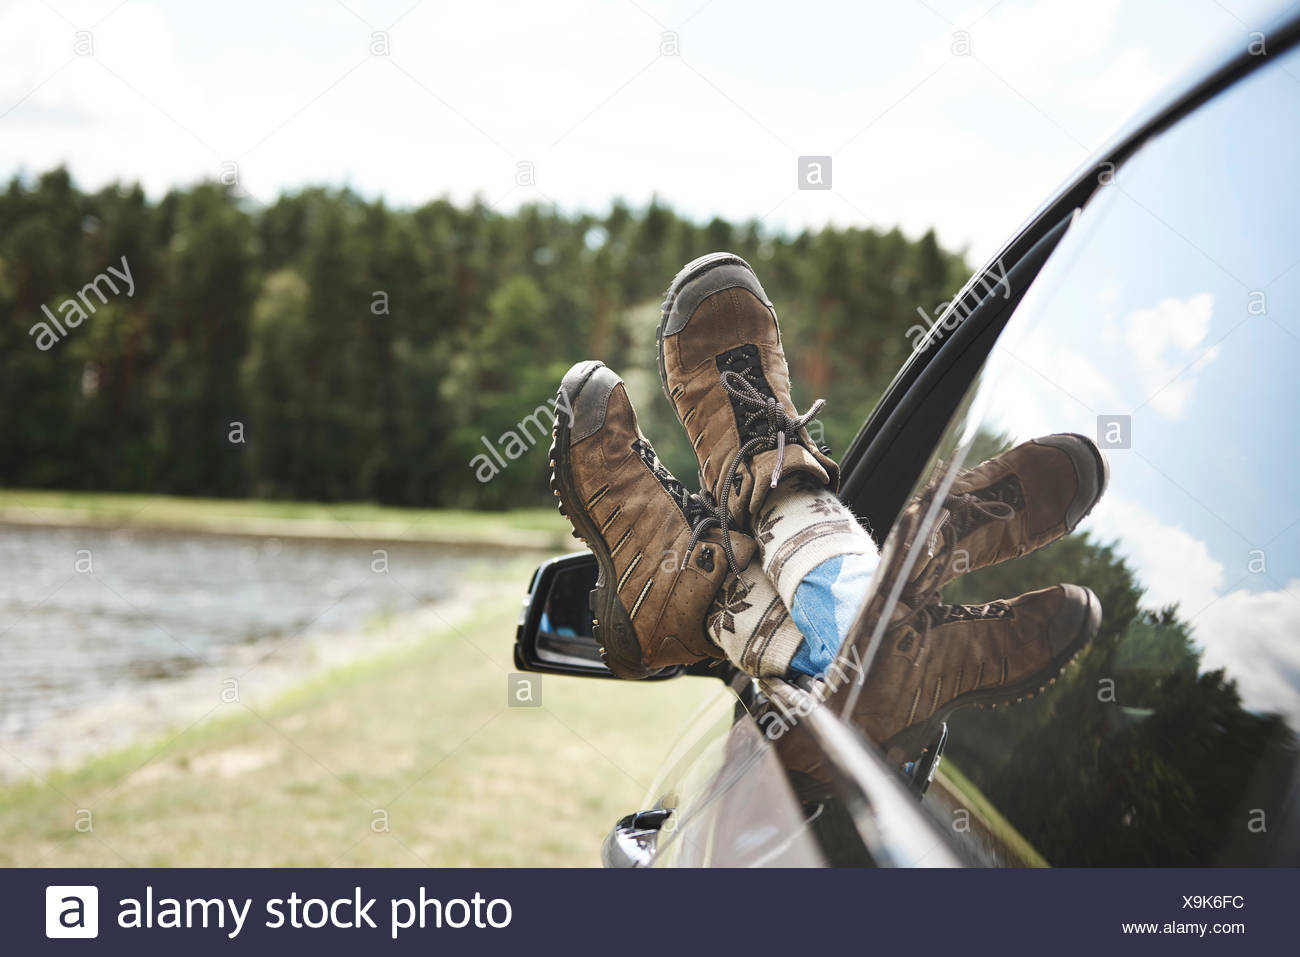 Woman relaxing in car, feet through open window, focus on feet - Stock Image